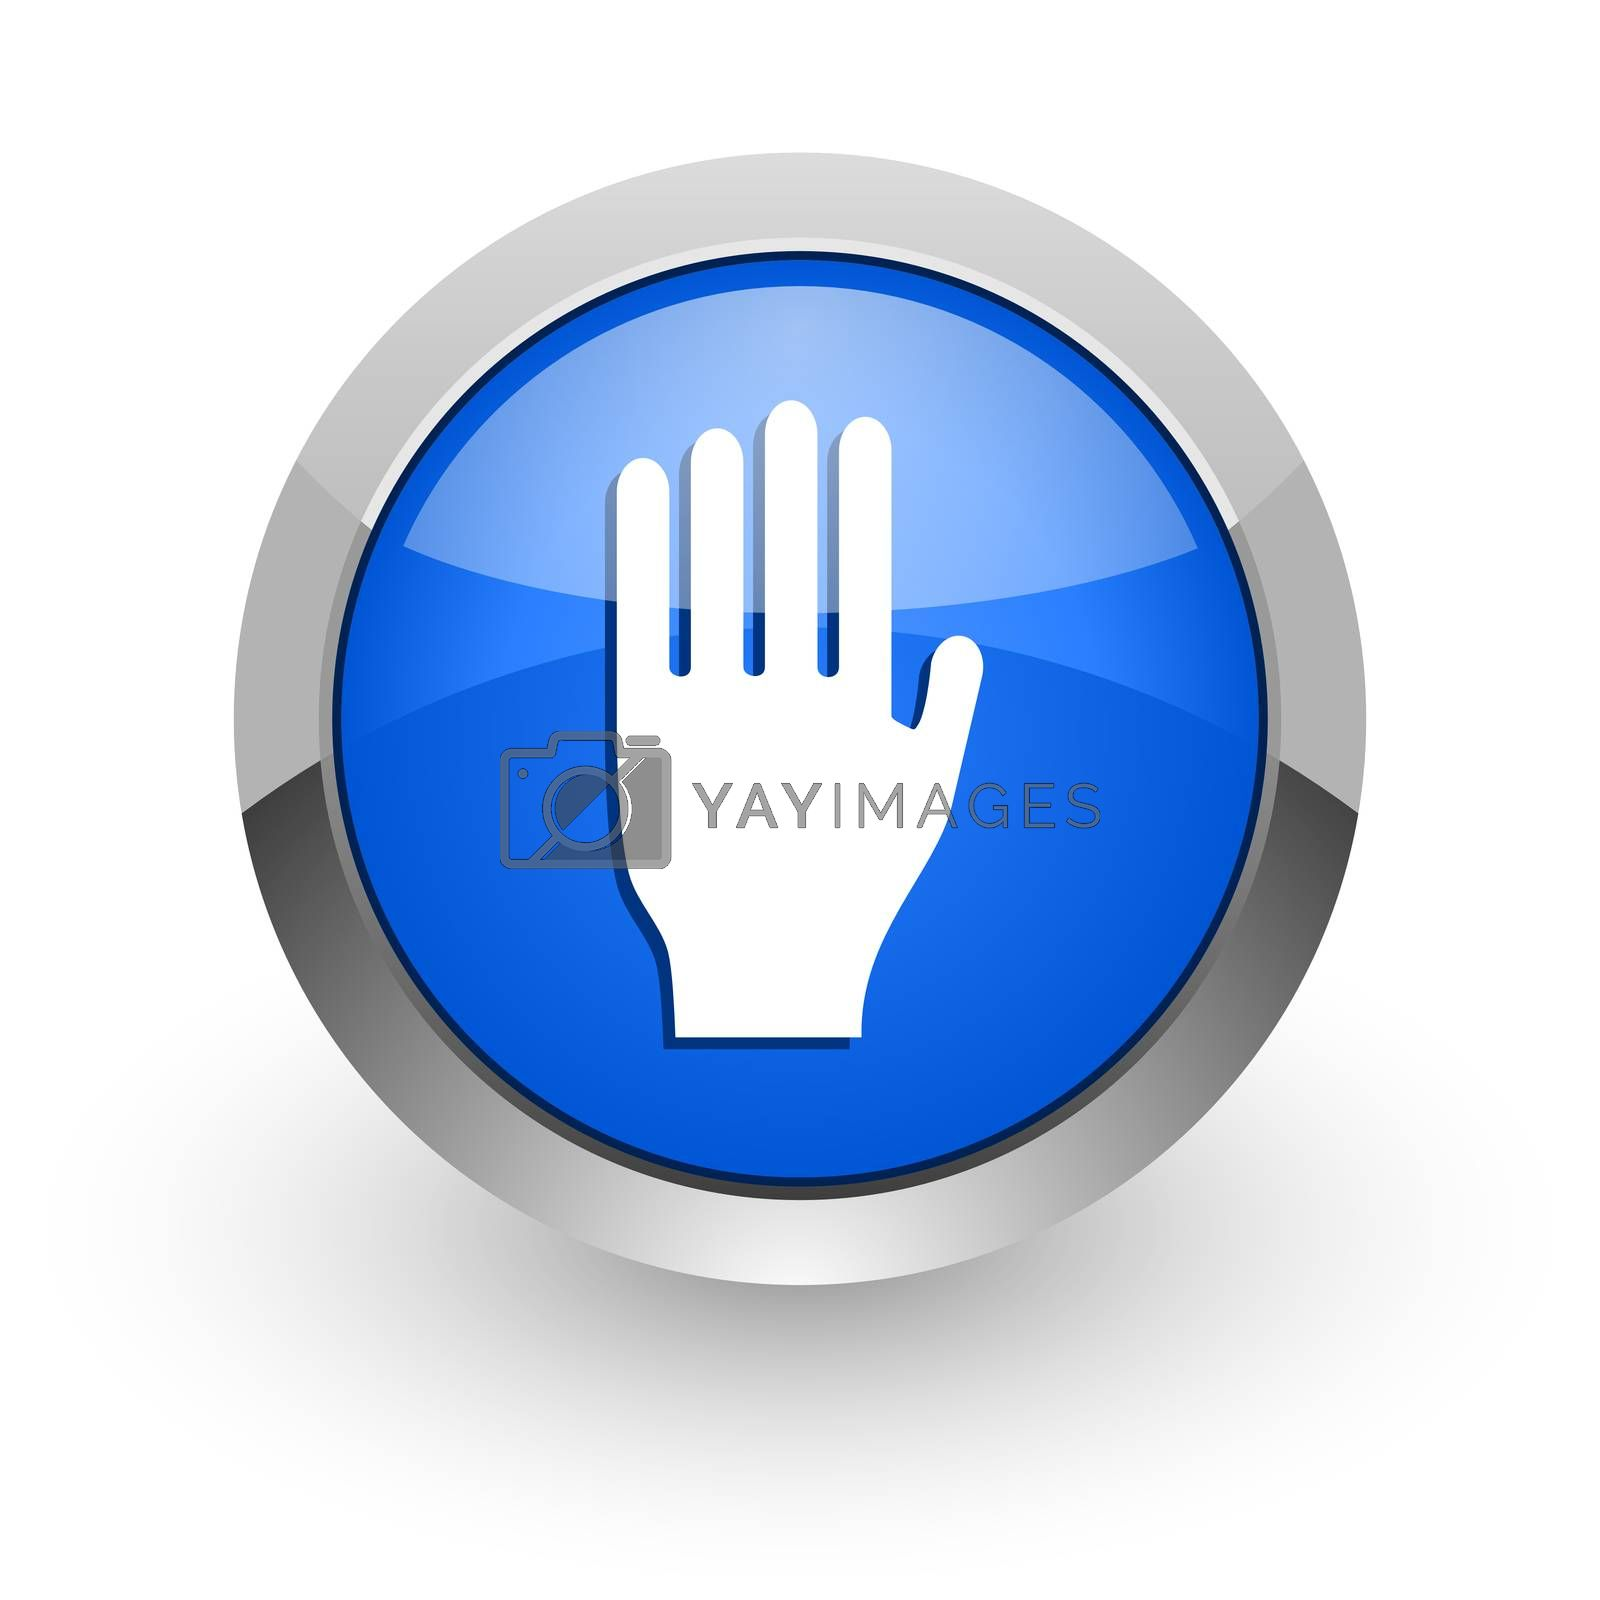 Royalty free image of stop blue glossy web icon by alexwhite